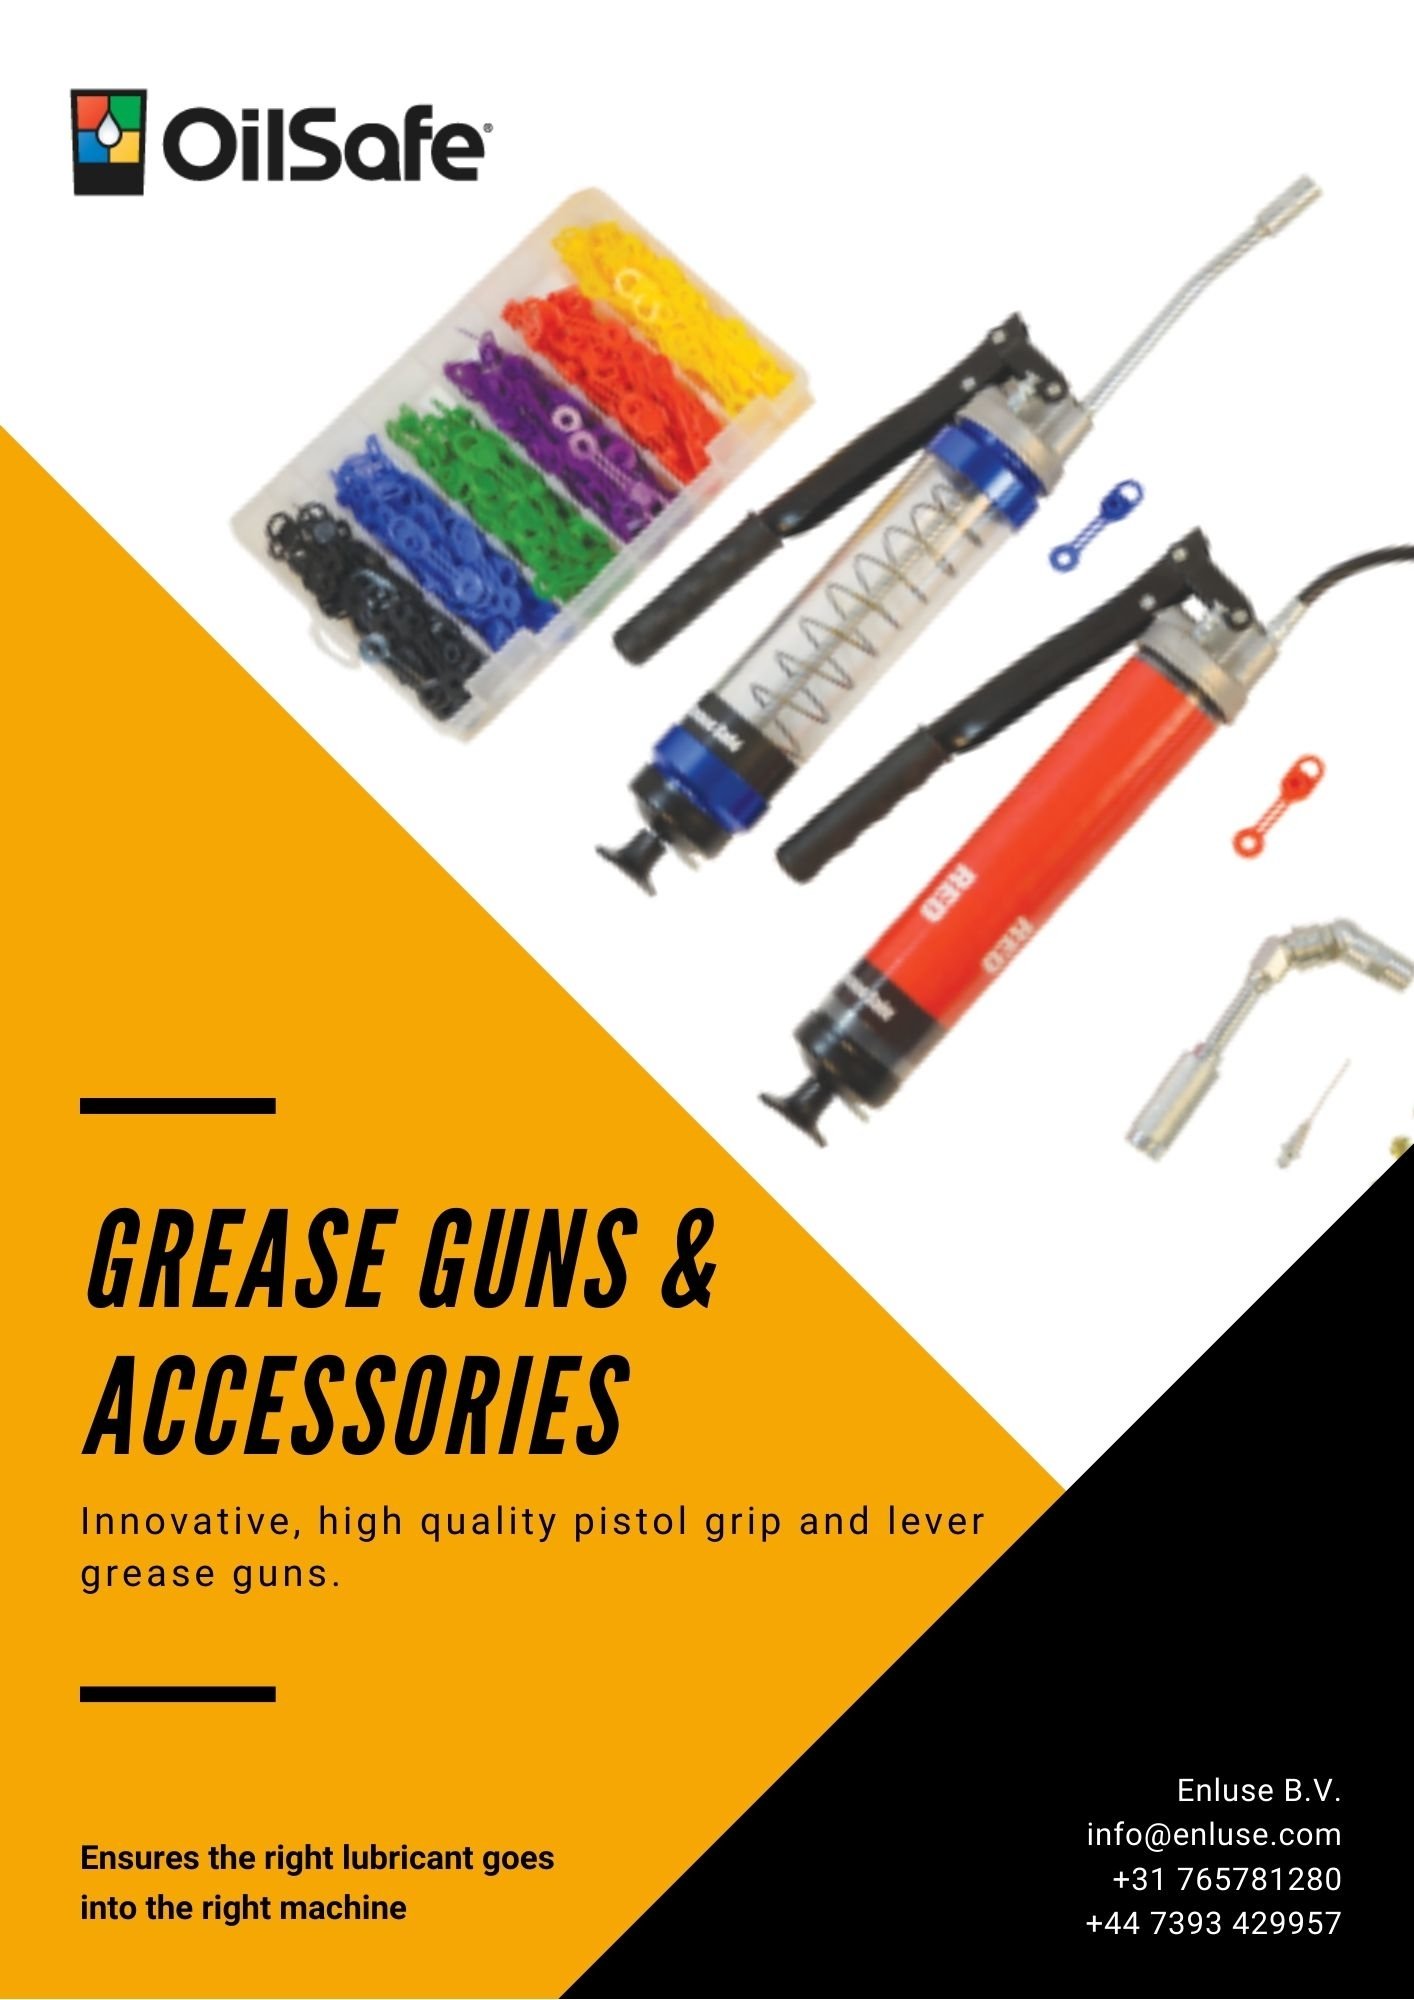 OilSafe Grease Guns and Accessories